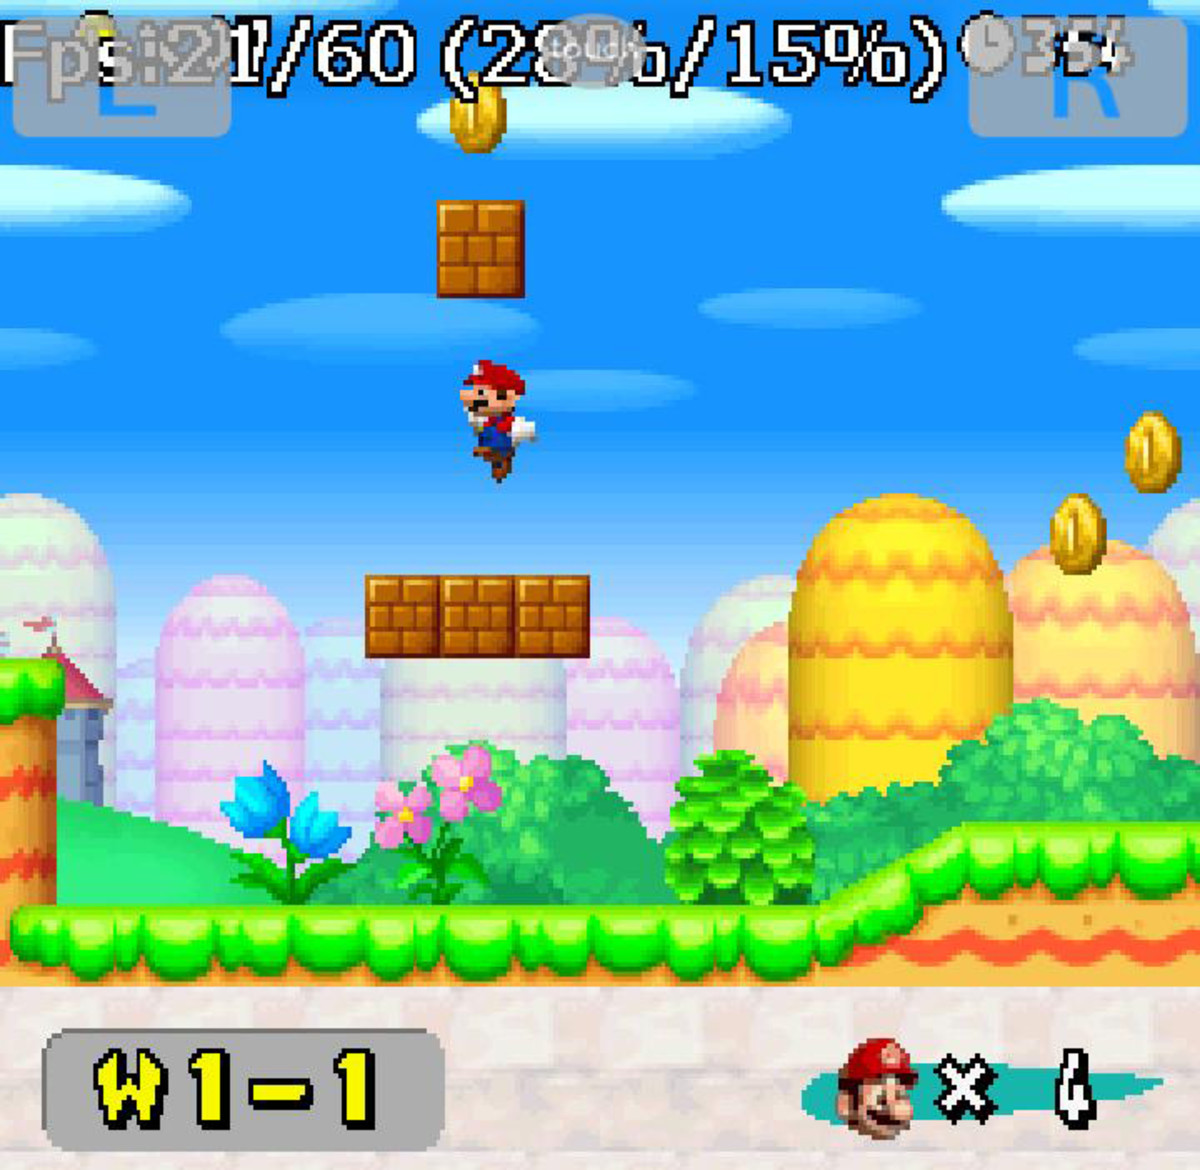 NDS4Droid Emulates a Mario Game (Check Frame Rate)